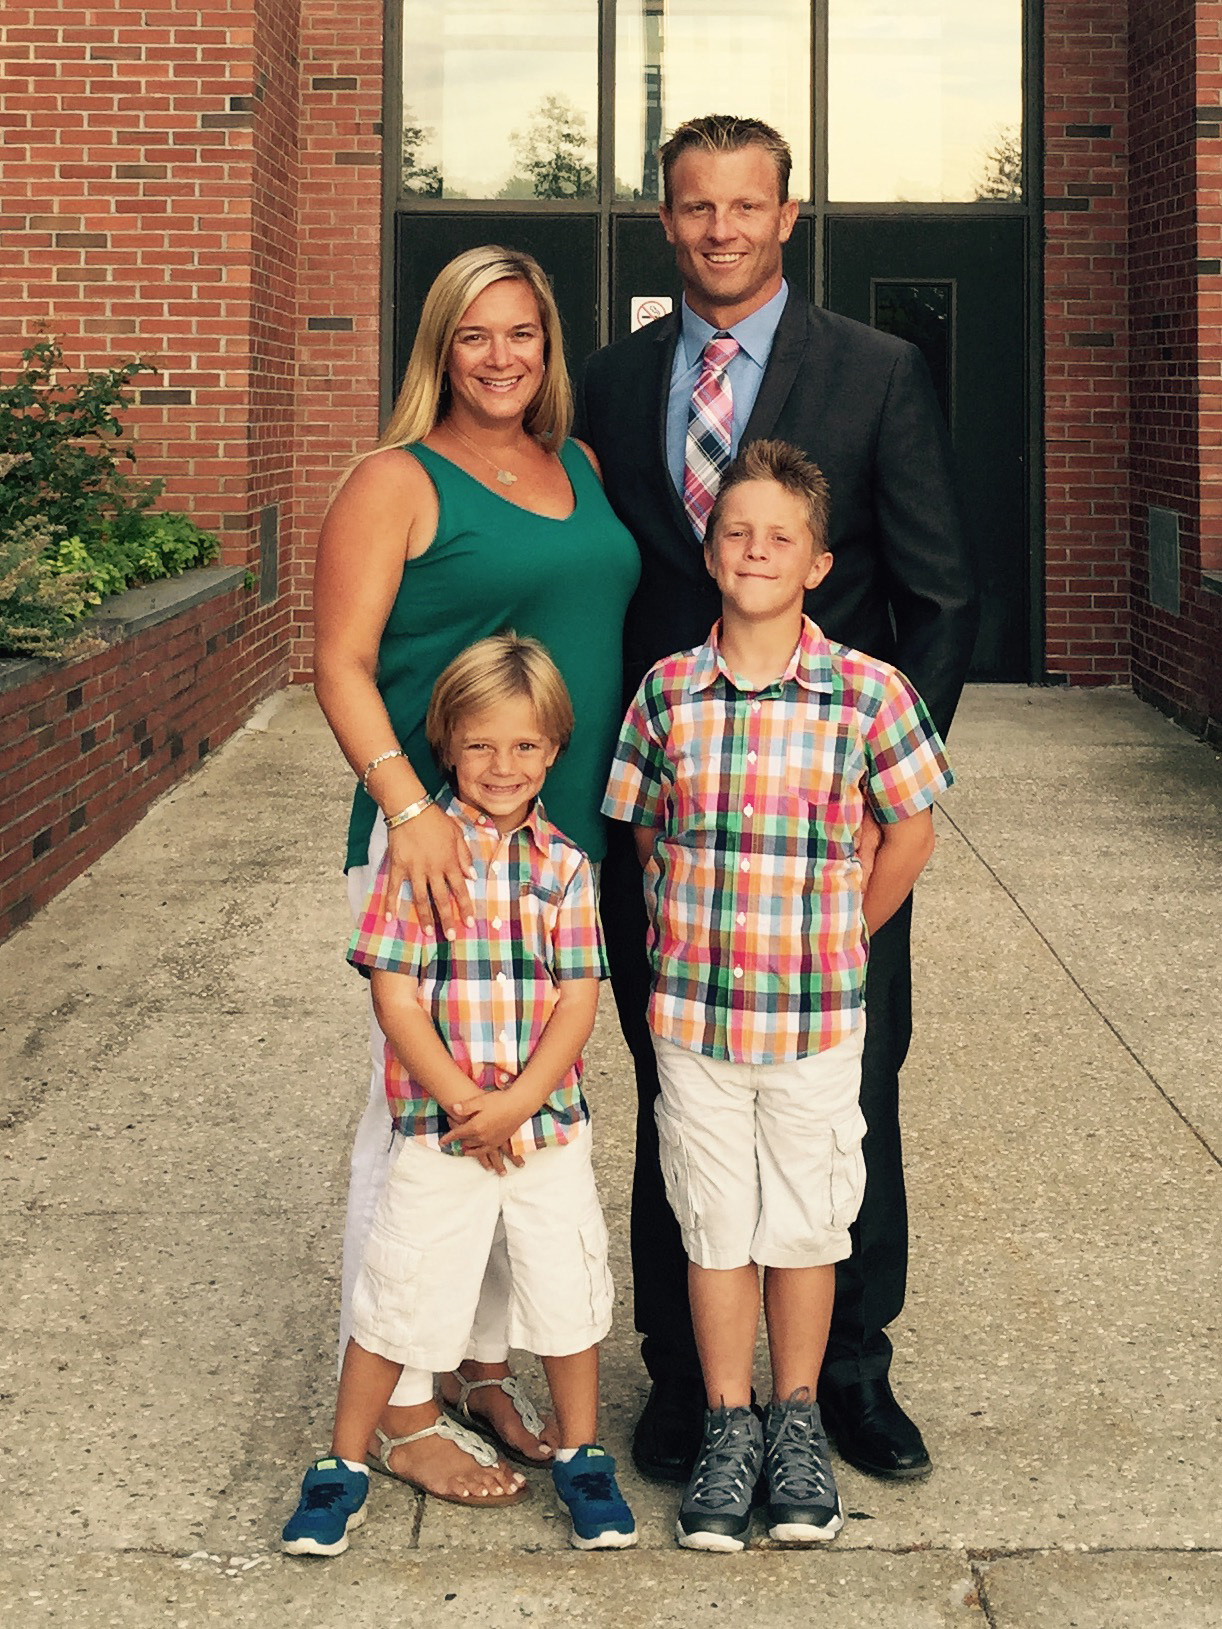 Eric Bramoff, top right, with his family when he took the athletic director position at Pierson in 2015.